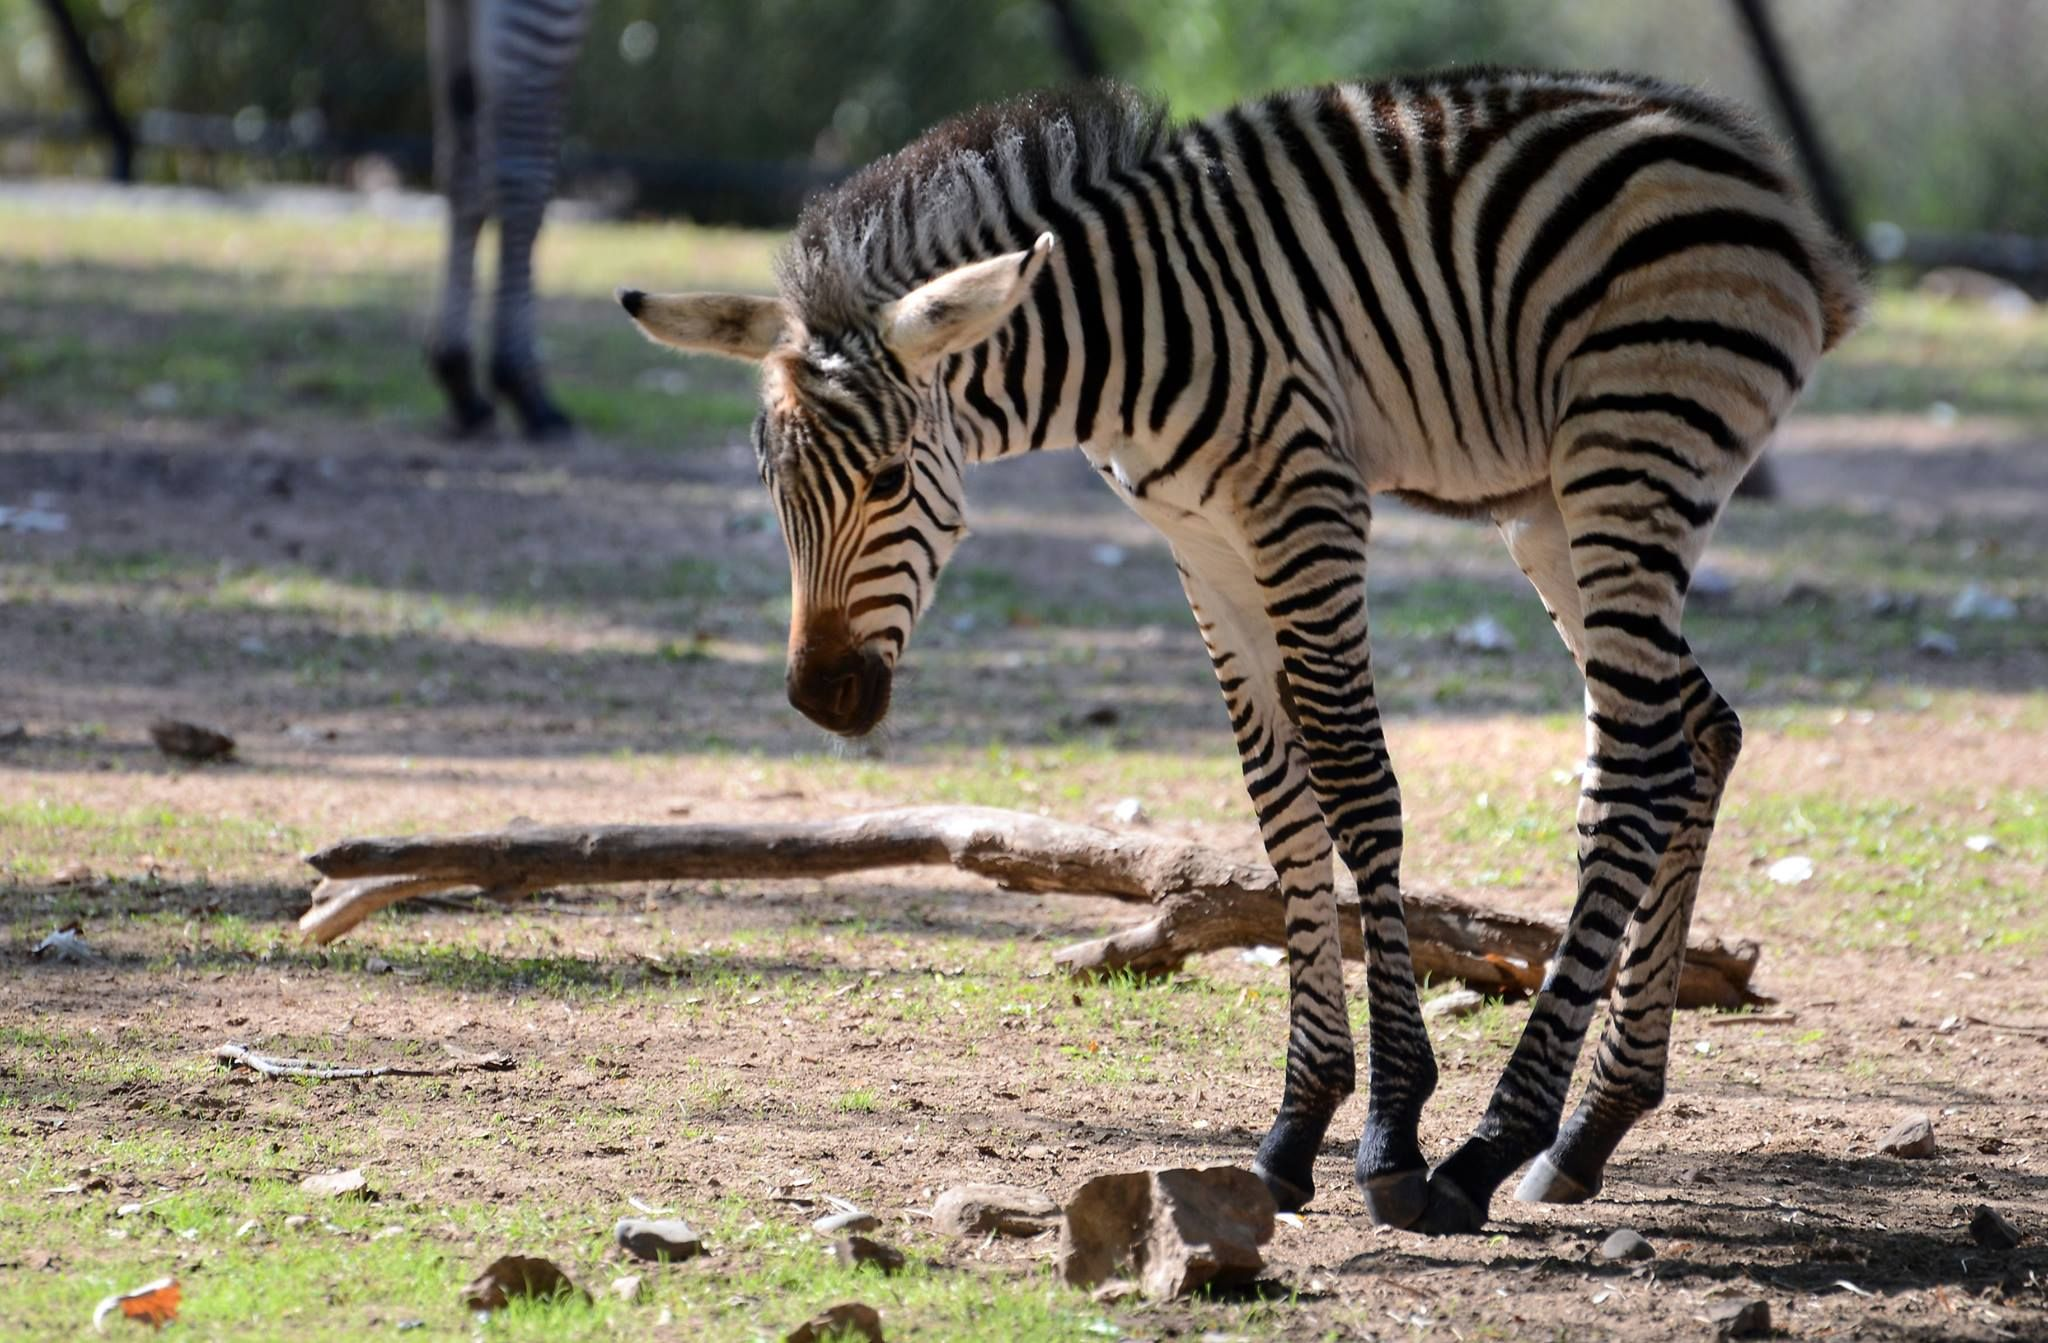 The Como Zoo's newest resident a baby zebra born over the